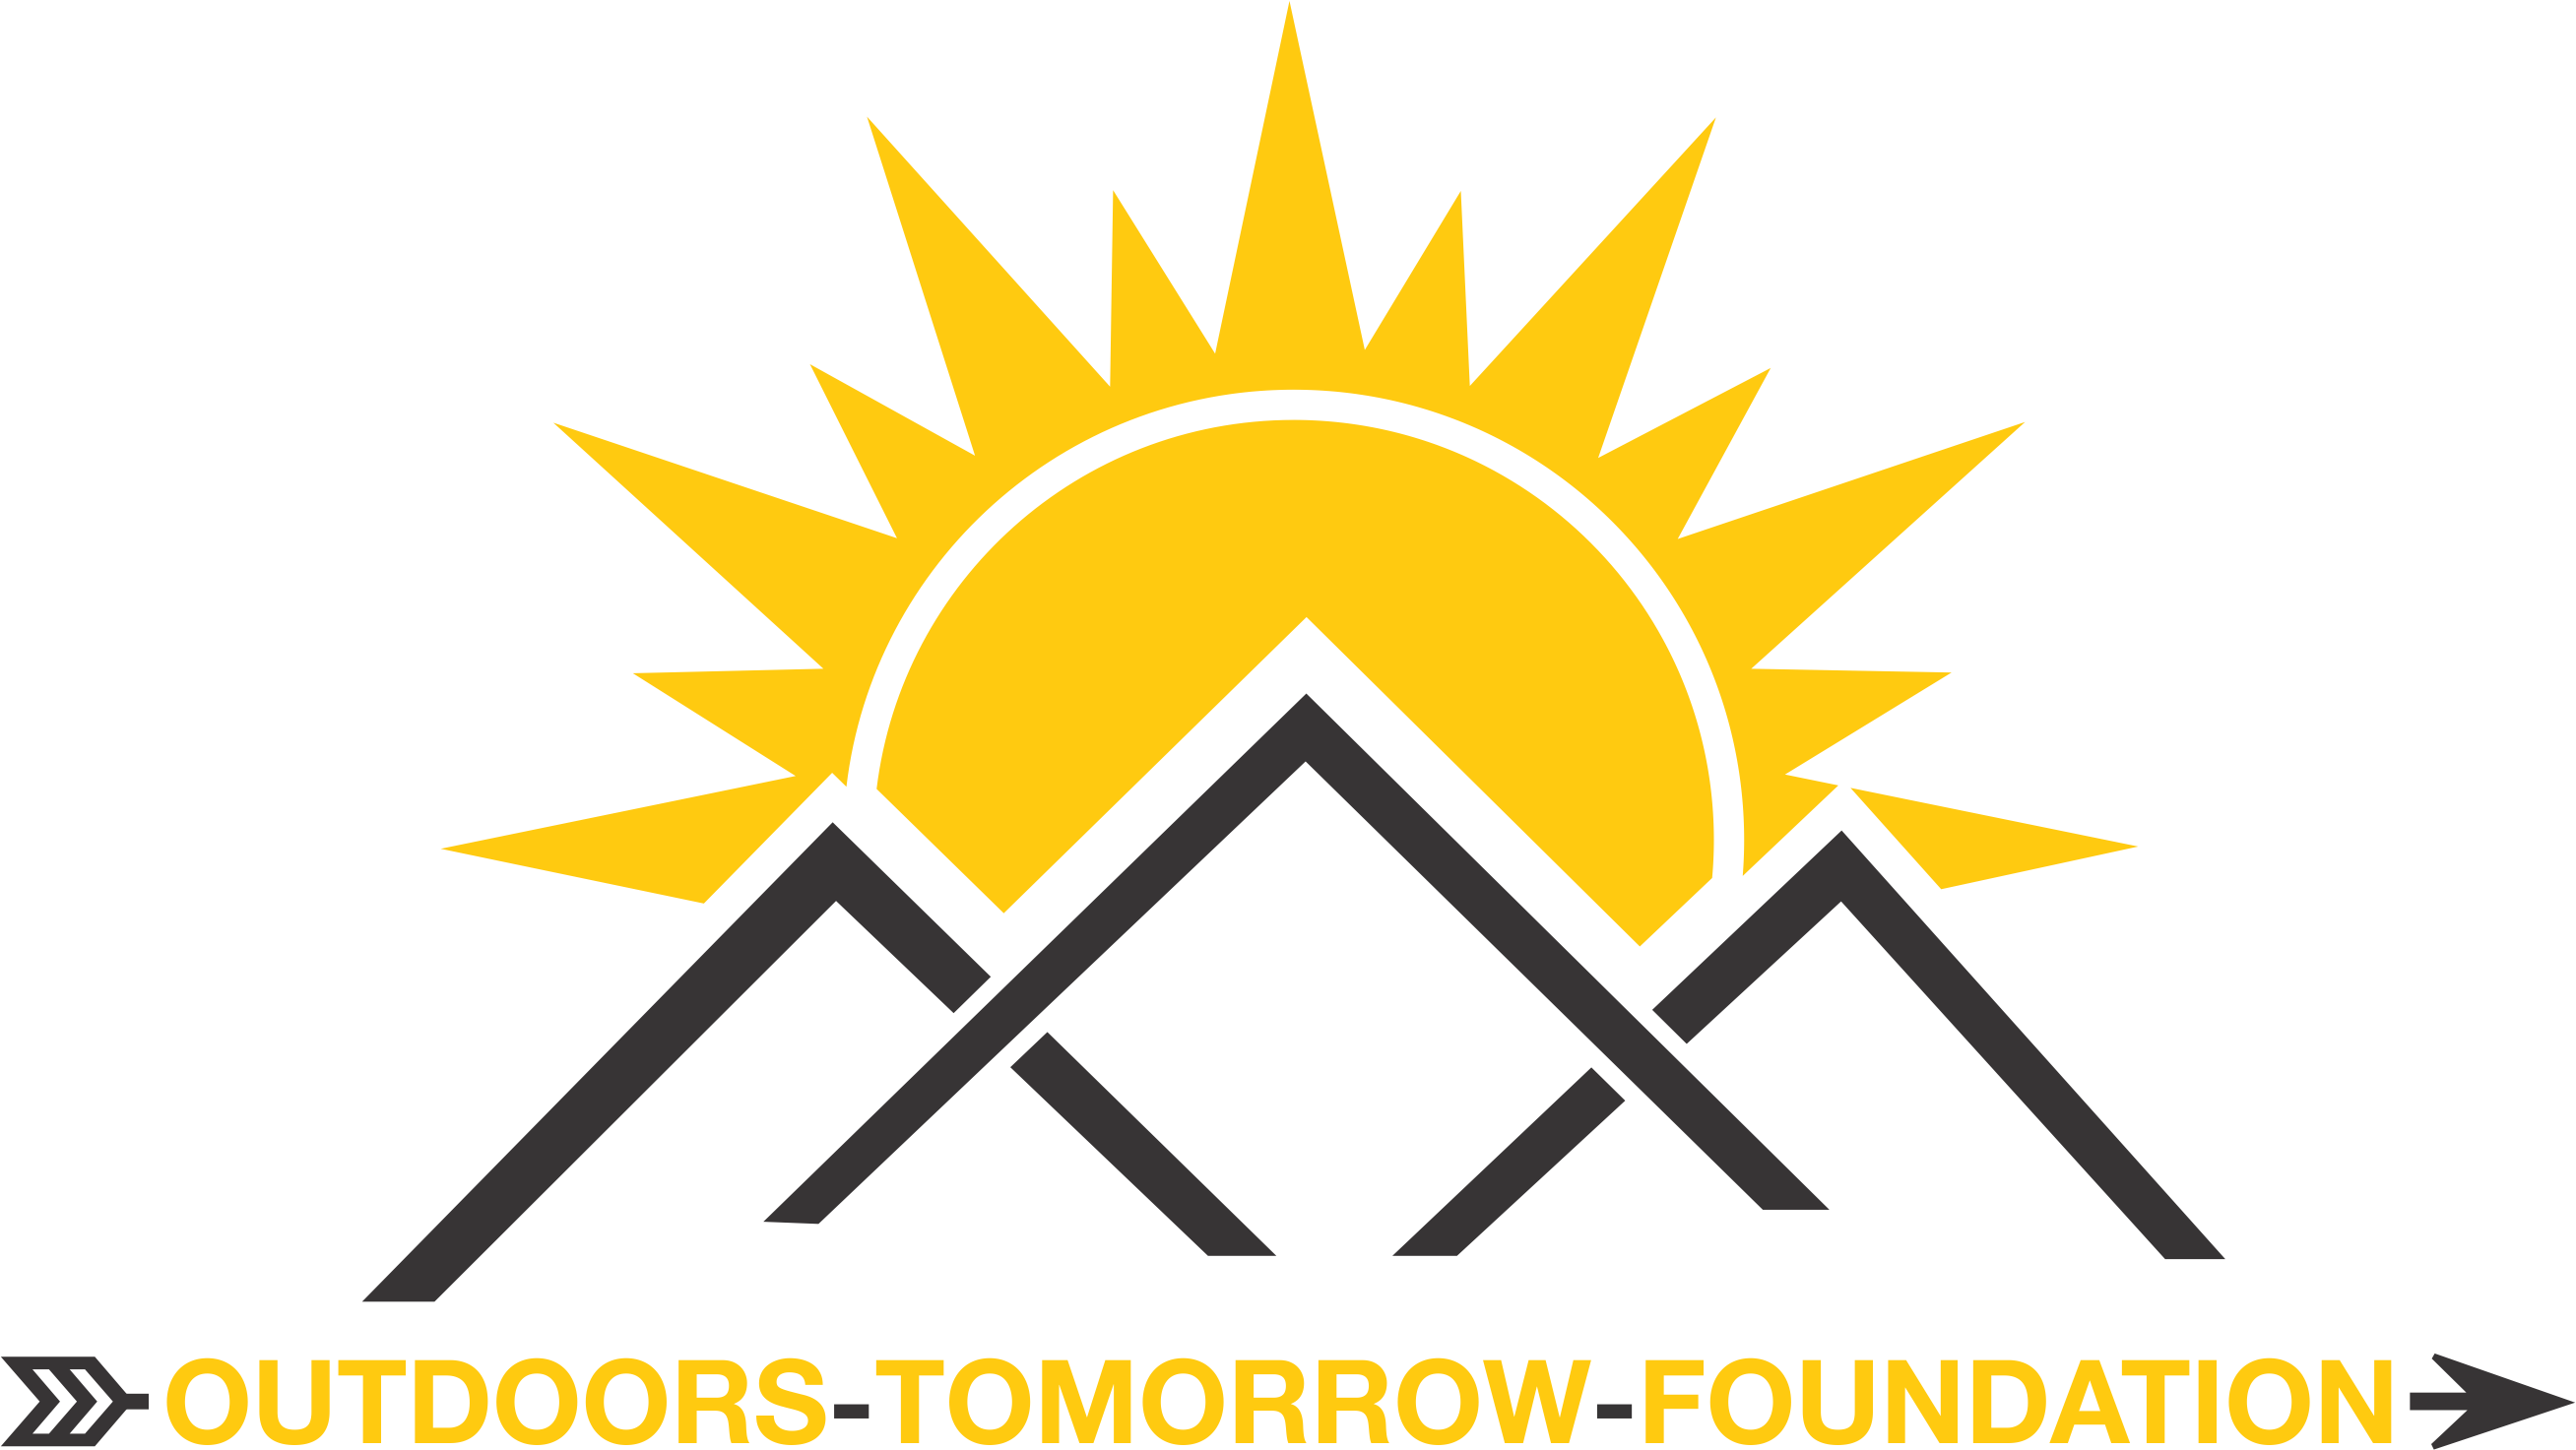 OUTDOORS TOMORROW FOUNDATION TO DOUBLE IMPACT, BRING OUTDOOR ADVENTURE EDUCATION TO 80,000 STUDENTS PER YEAR